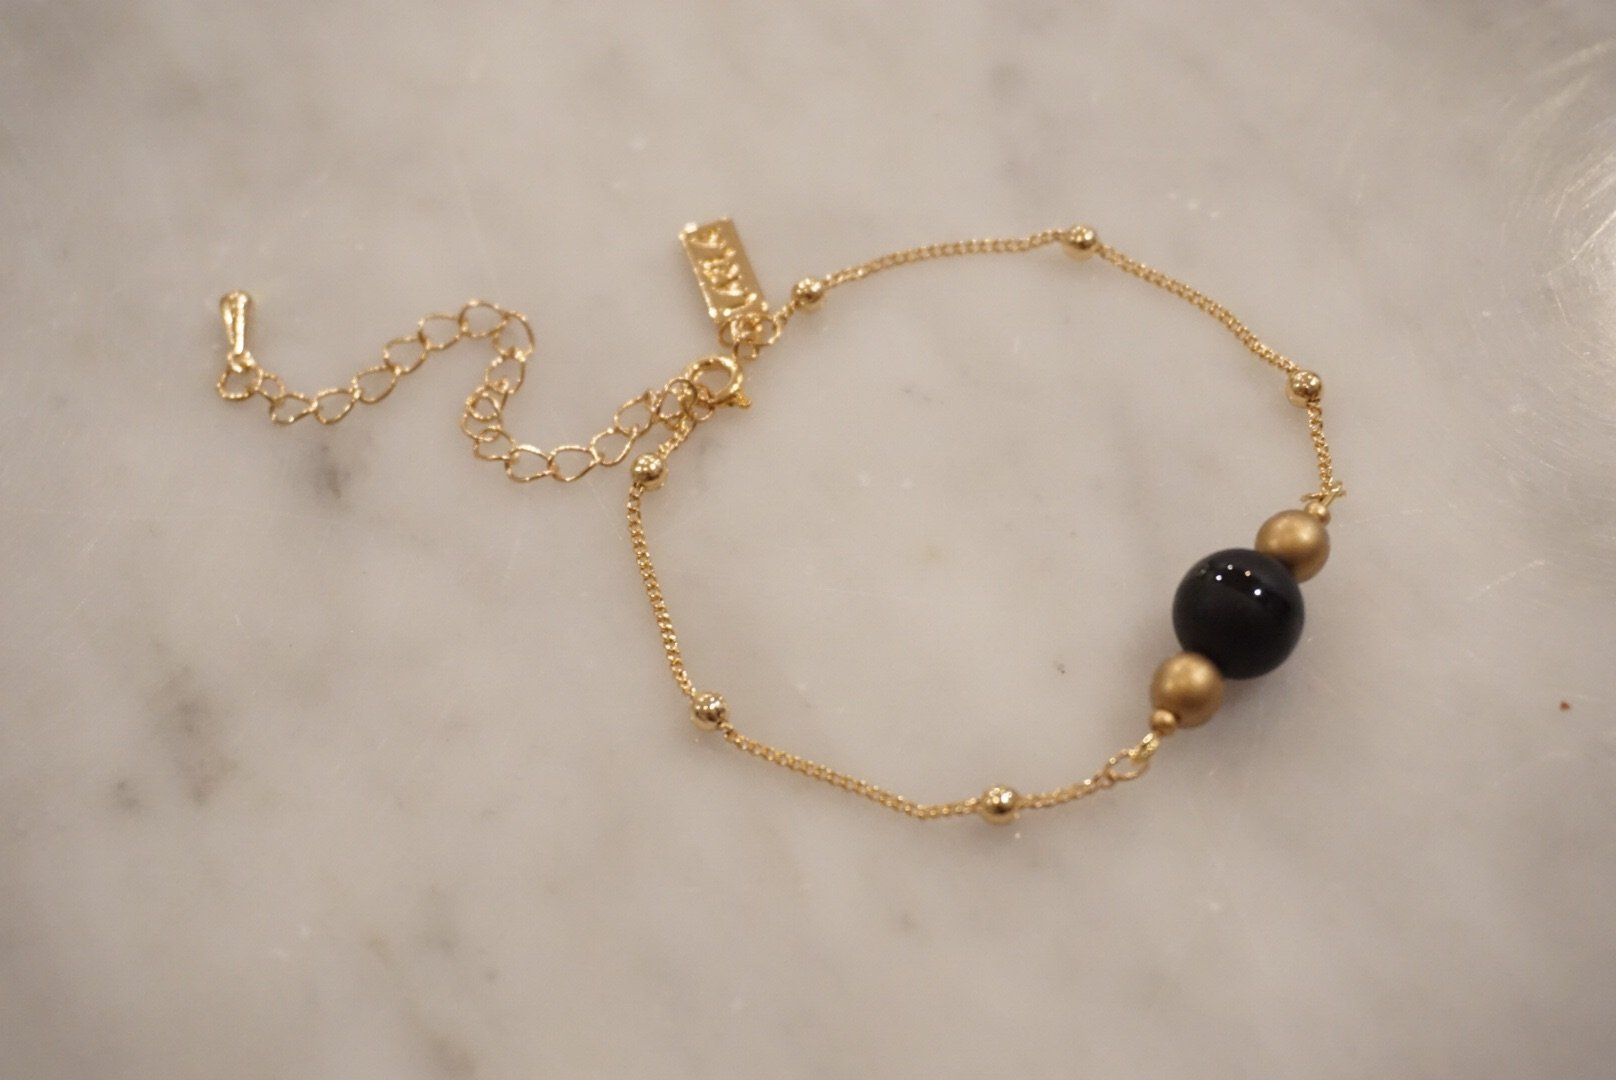 LA2LA Handmade Black And Gold Beaded Bracelet